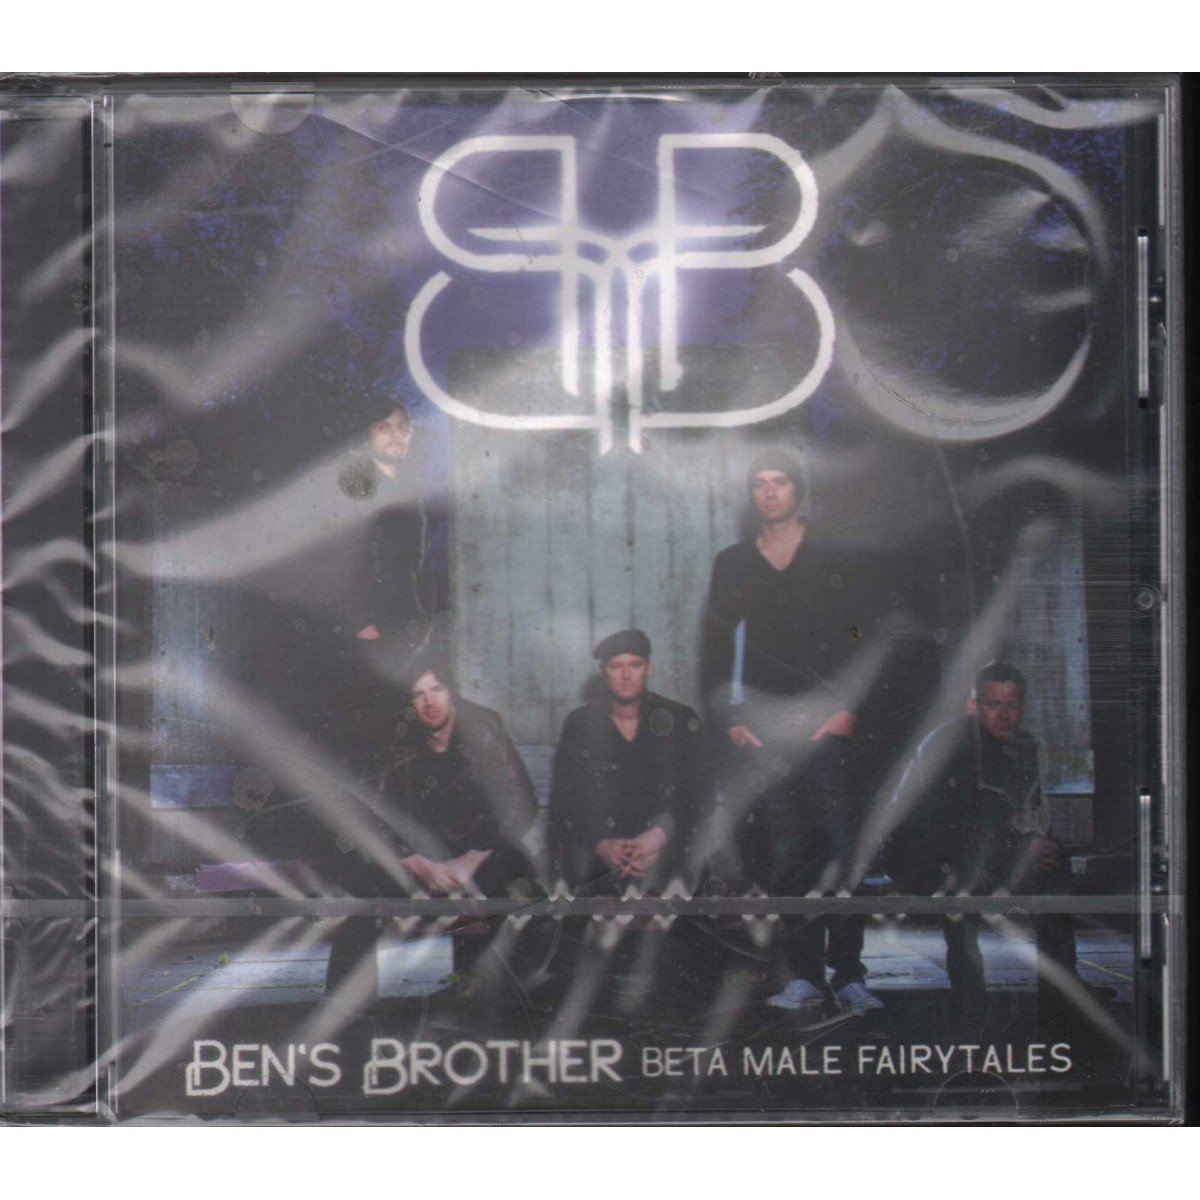 Ben's Brother ‎CD Beta Male Fairytales / Relentless 50999 513074 2 4 Sigillato